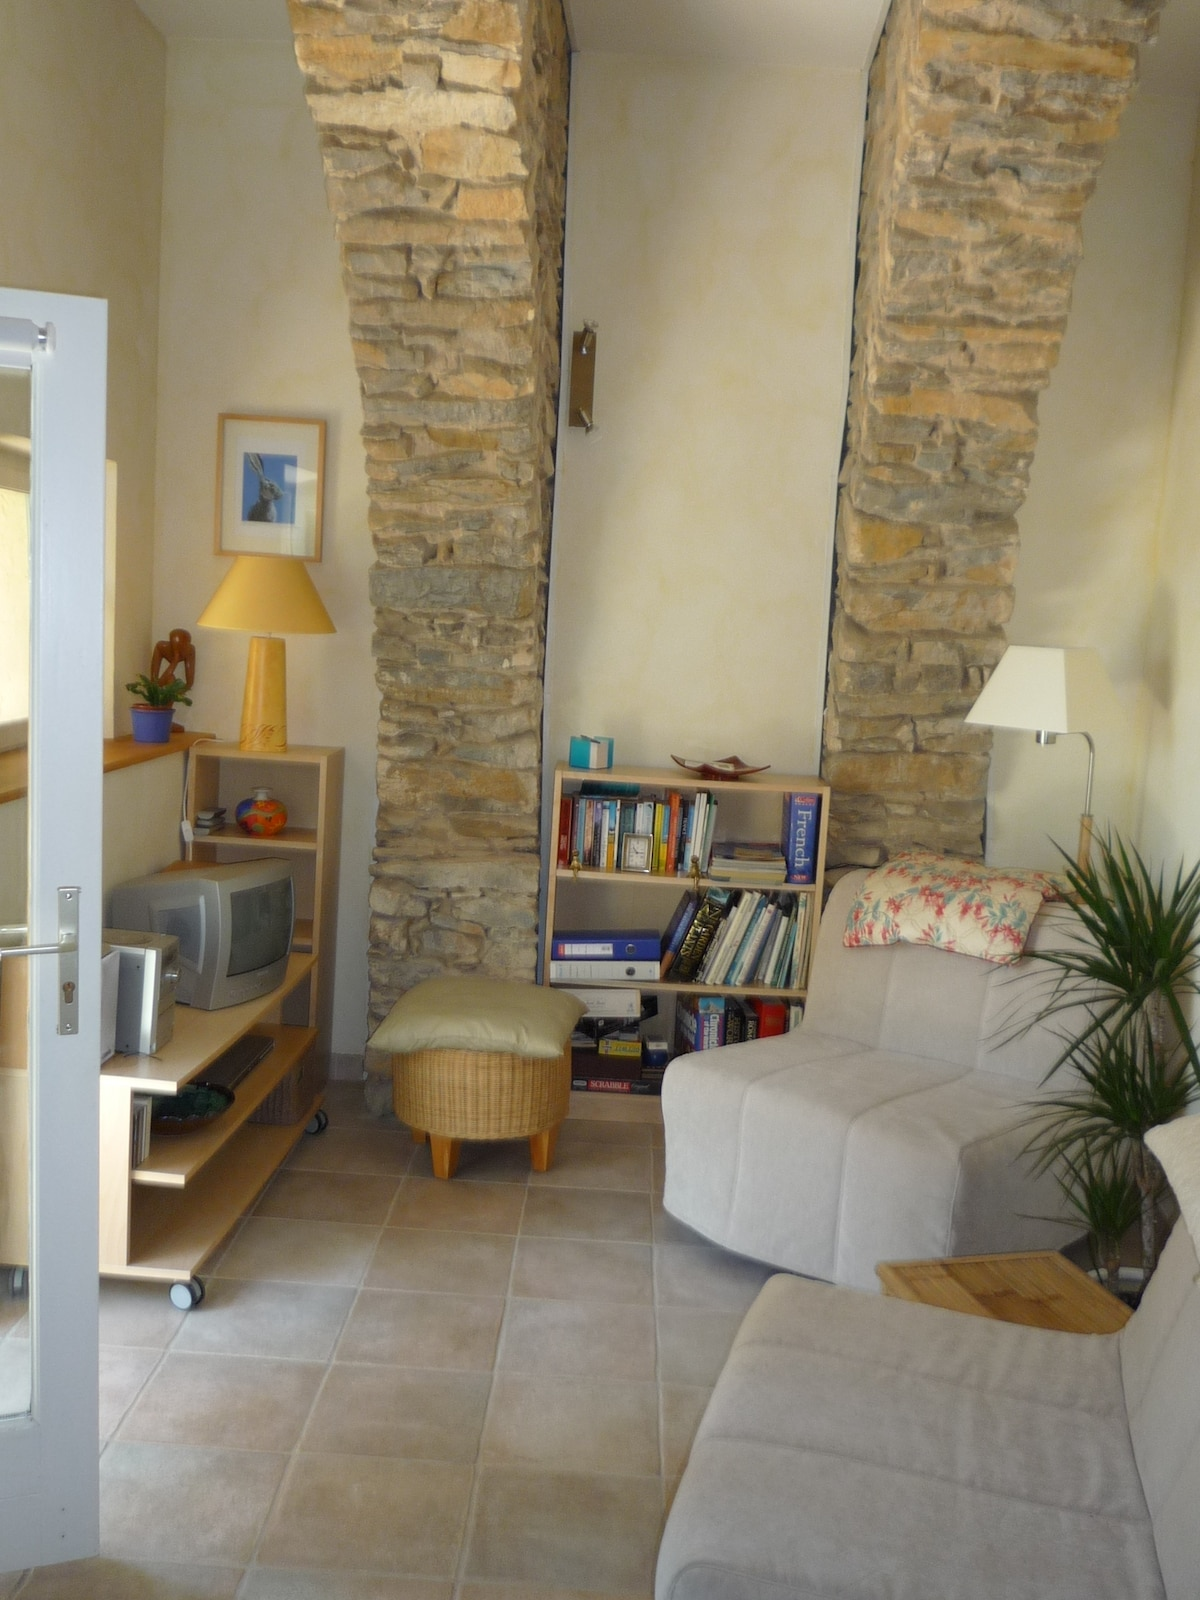 Lounge with exposed stone arches. DVDs, books, free wifi.